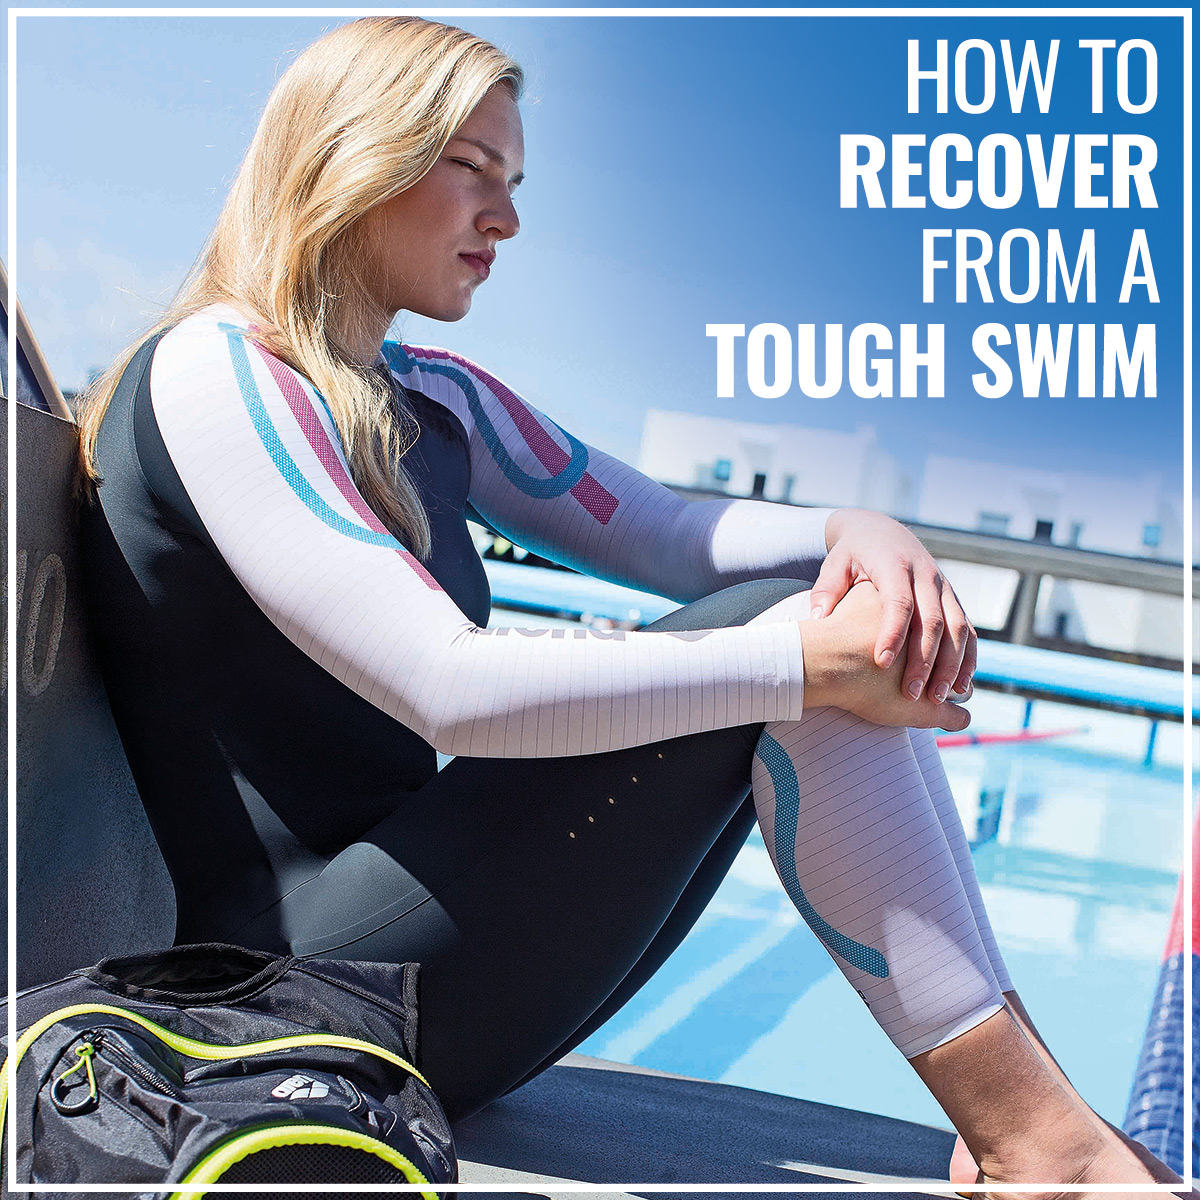 How To Recover From A Tough Swim